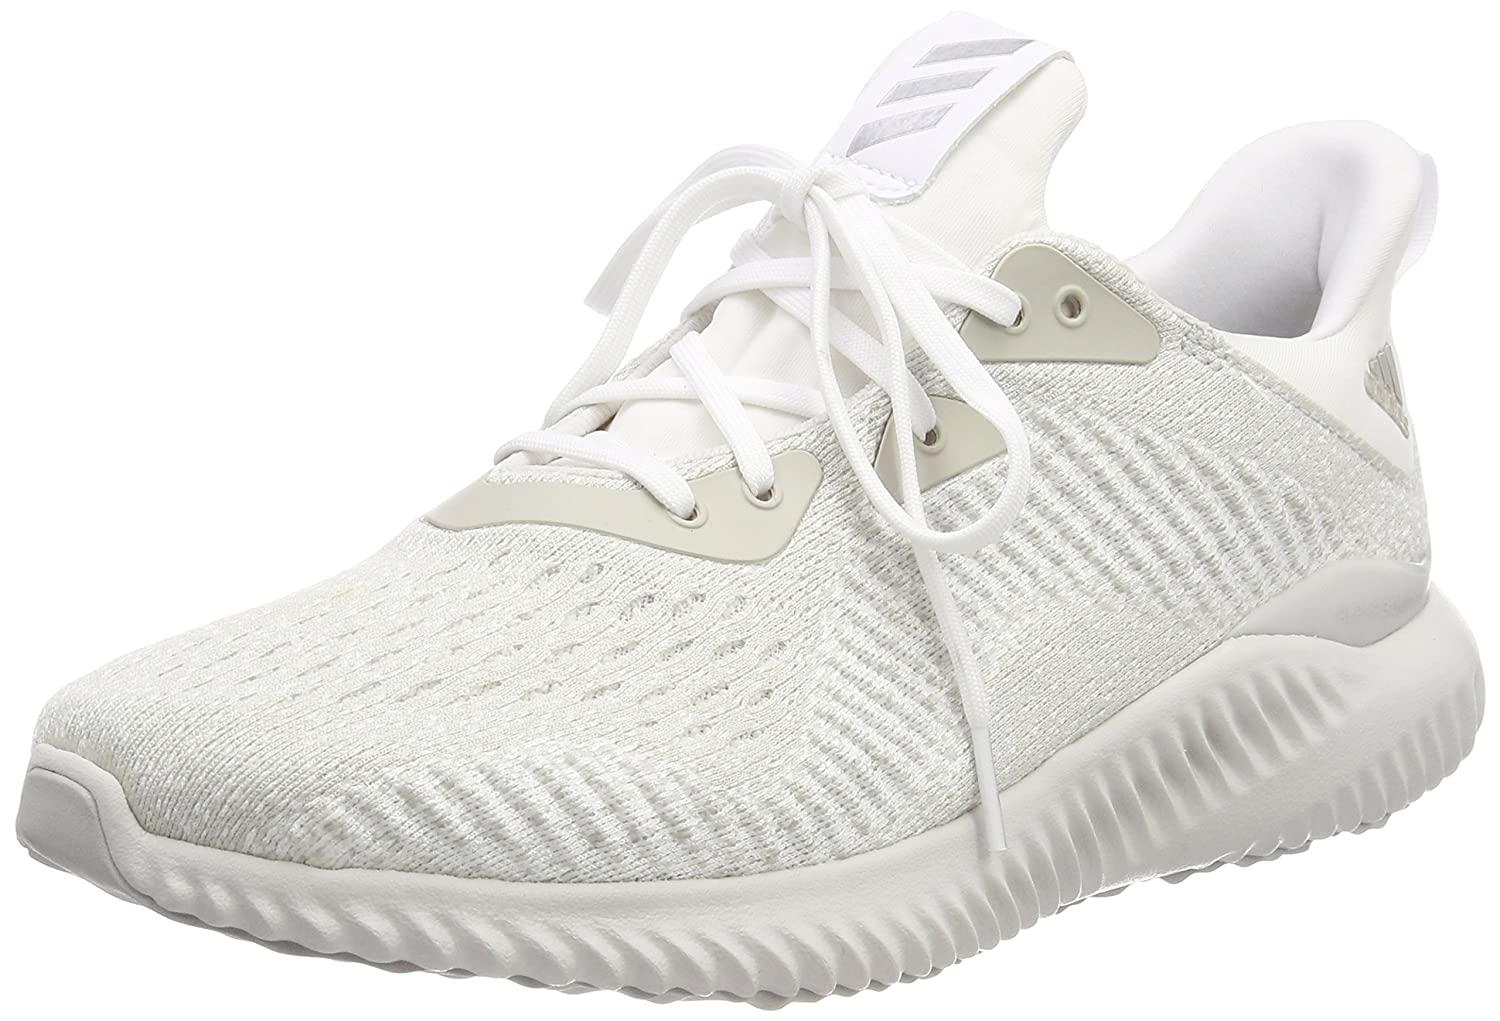 brand new 45c1d d2b2b Amazon.com | adidas Alphabounce Em Shoes - SS18-10.5 - White ...